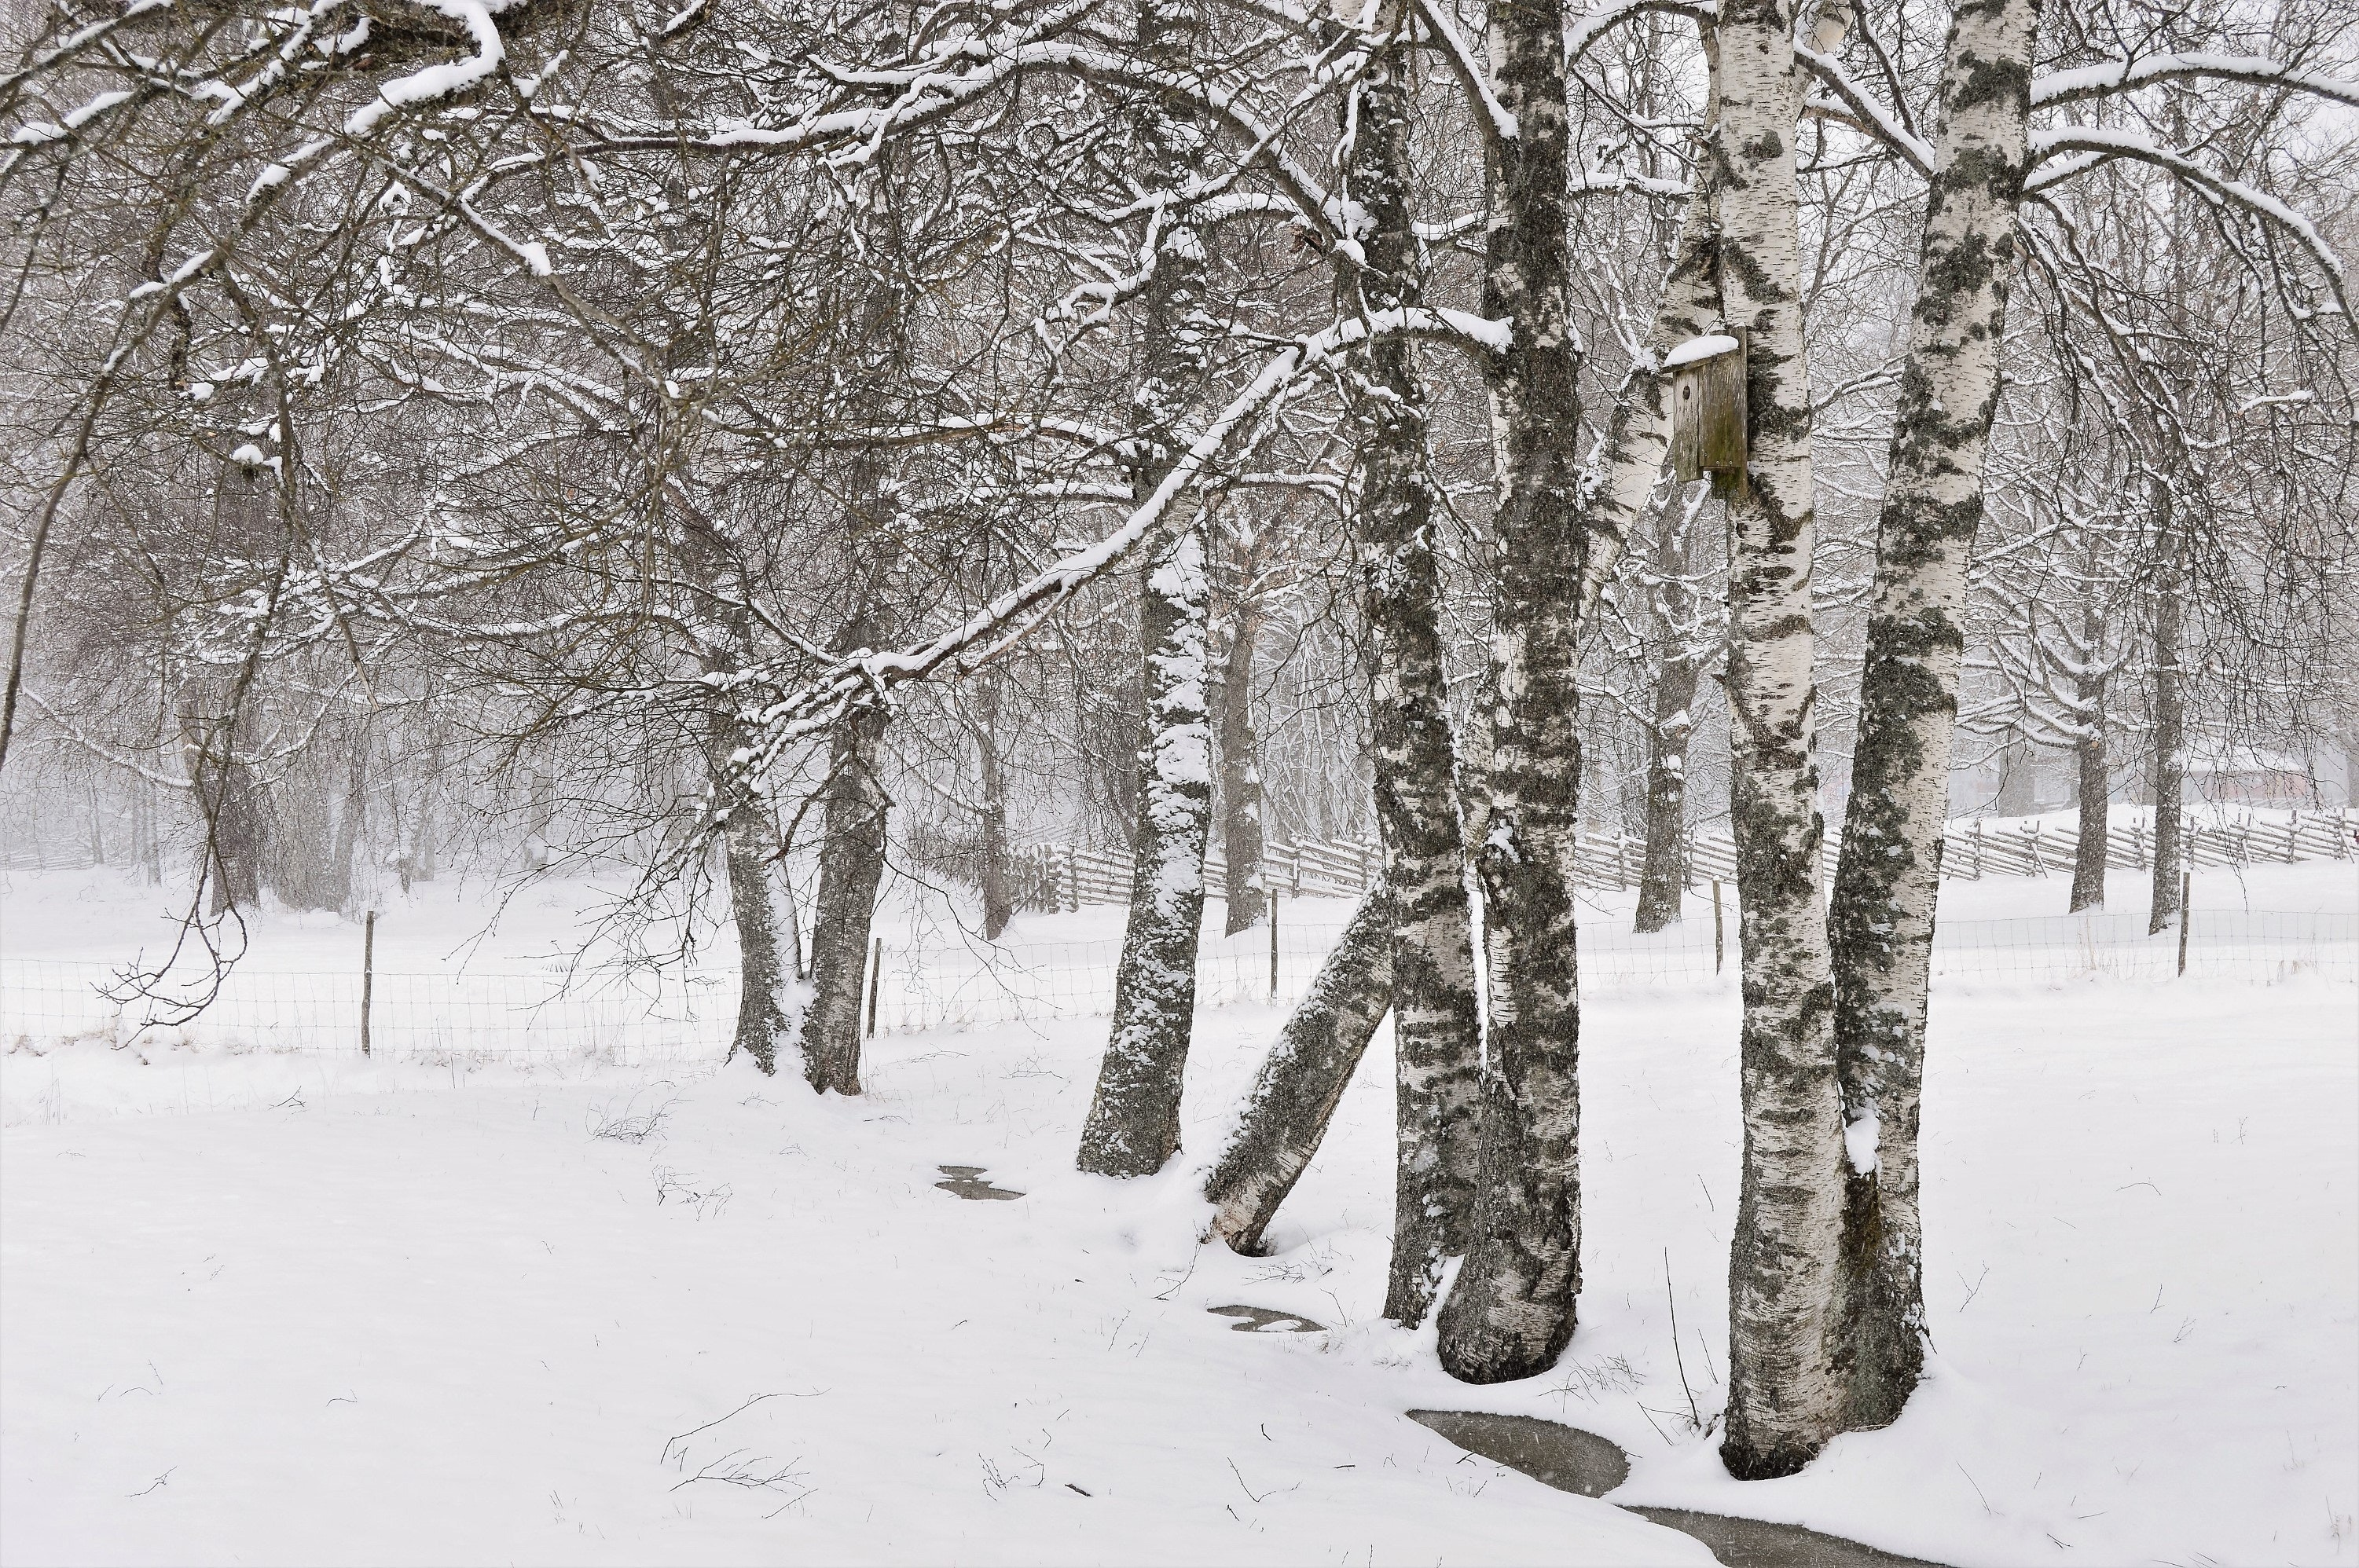 Gray and White Trees, Season, Snow, Scenic, Scene, HQ Photo